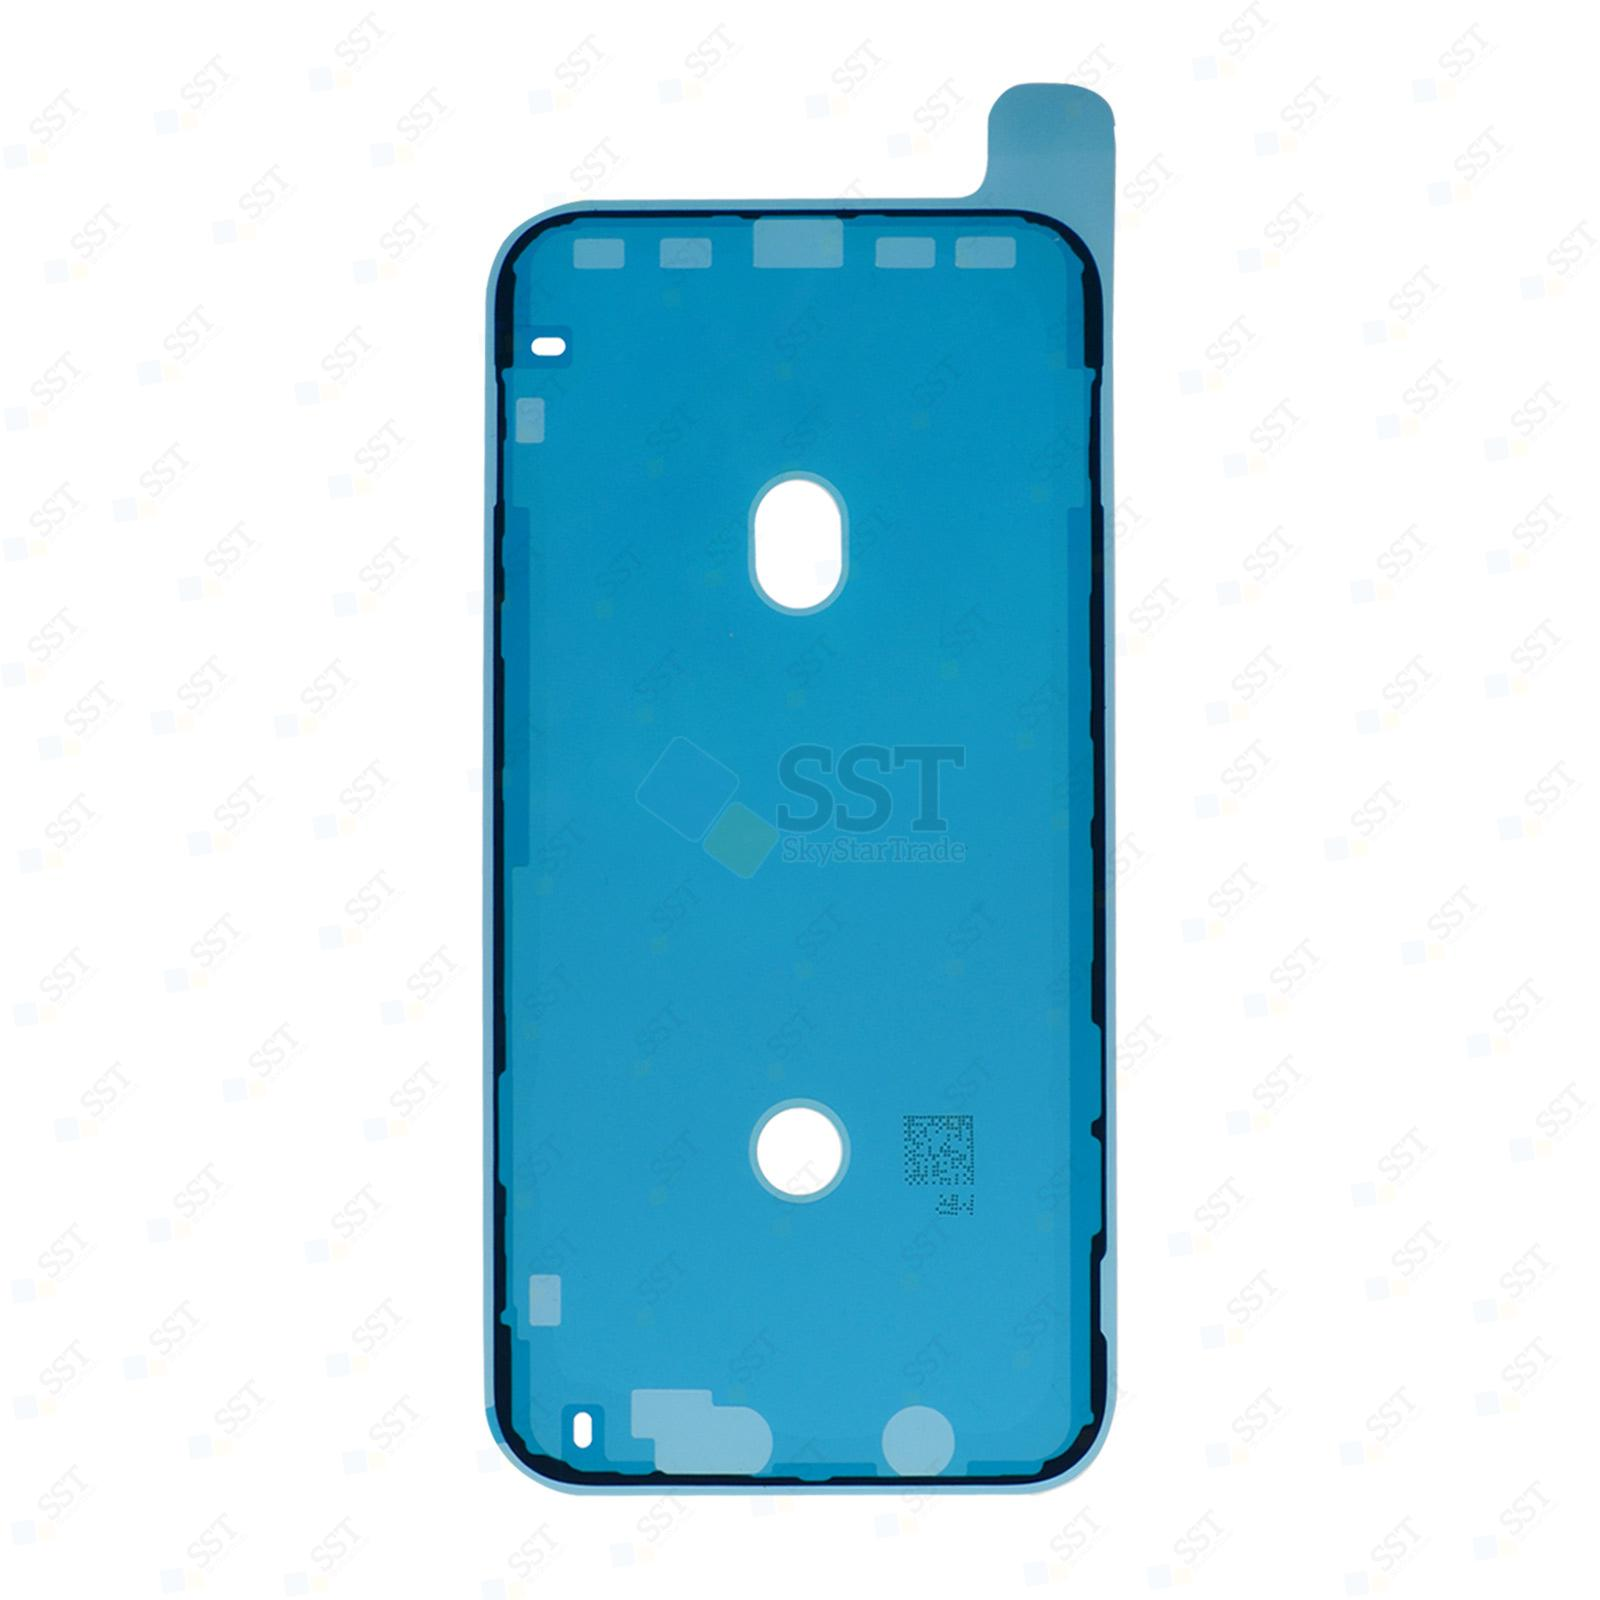 iPhone XR A1984 A2105 A2106 A2107 A2108 LCD Bezel Frame Pre-Cut Adhesive Sticker Tape